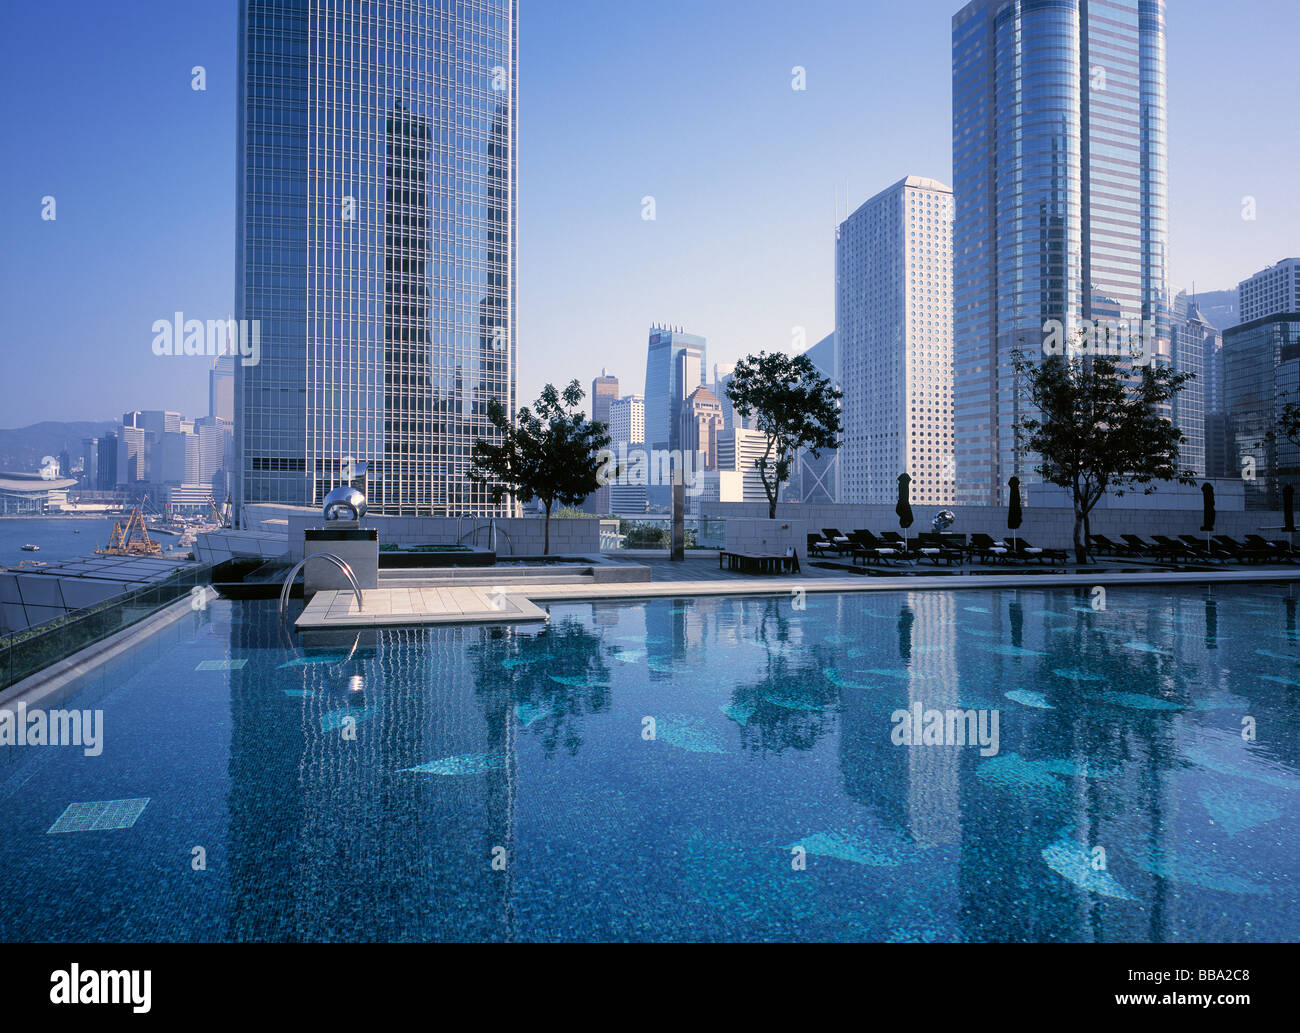 Four Seasons Hotel Pool In The Center Of Hong Kong Stock Photo 24193016 Alamy